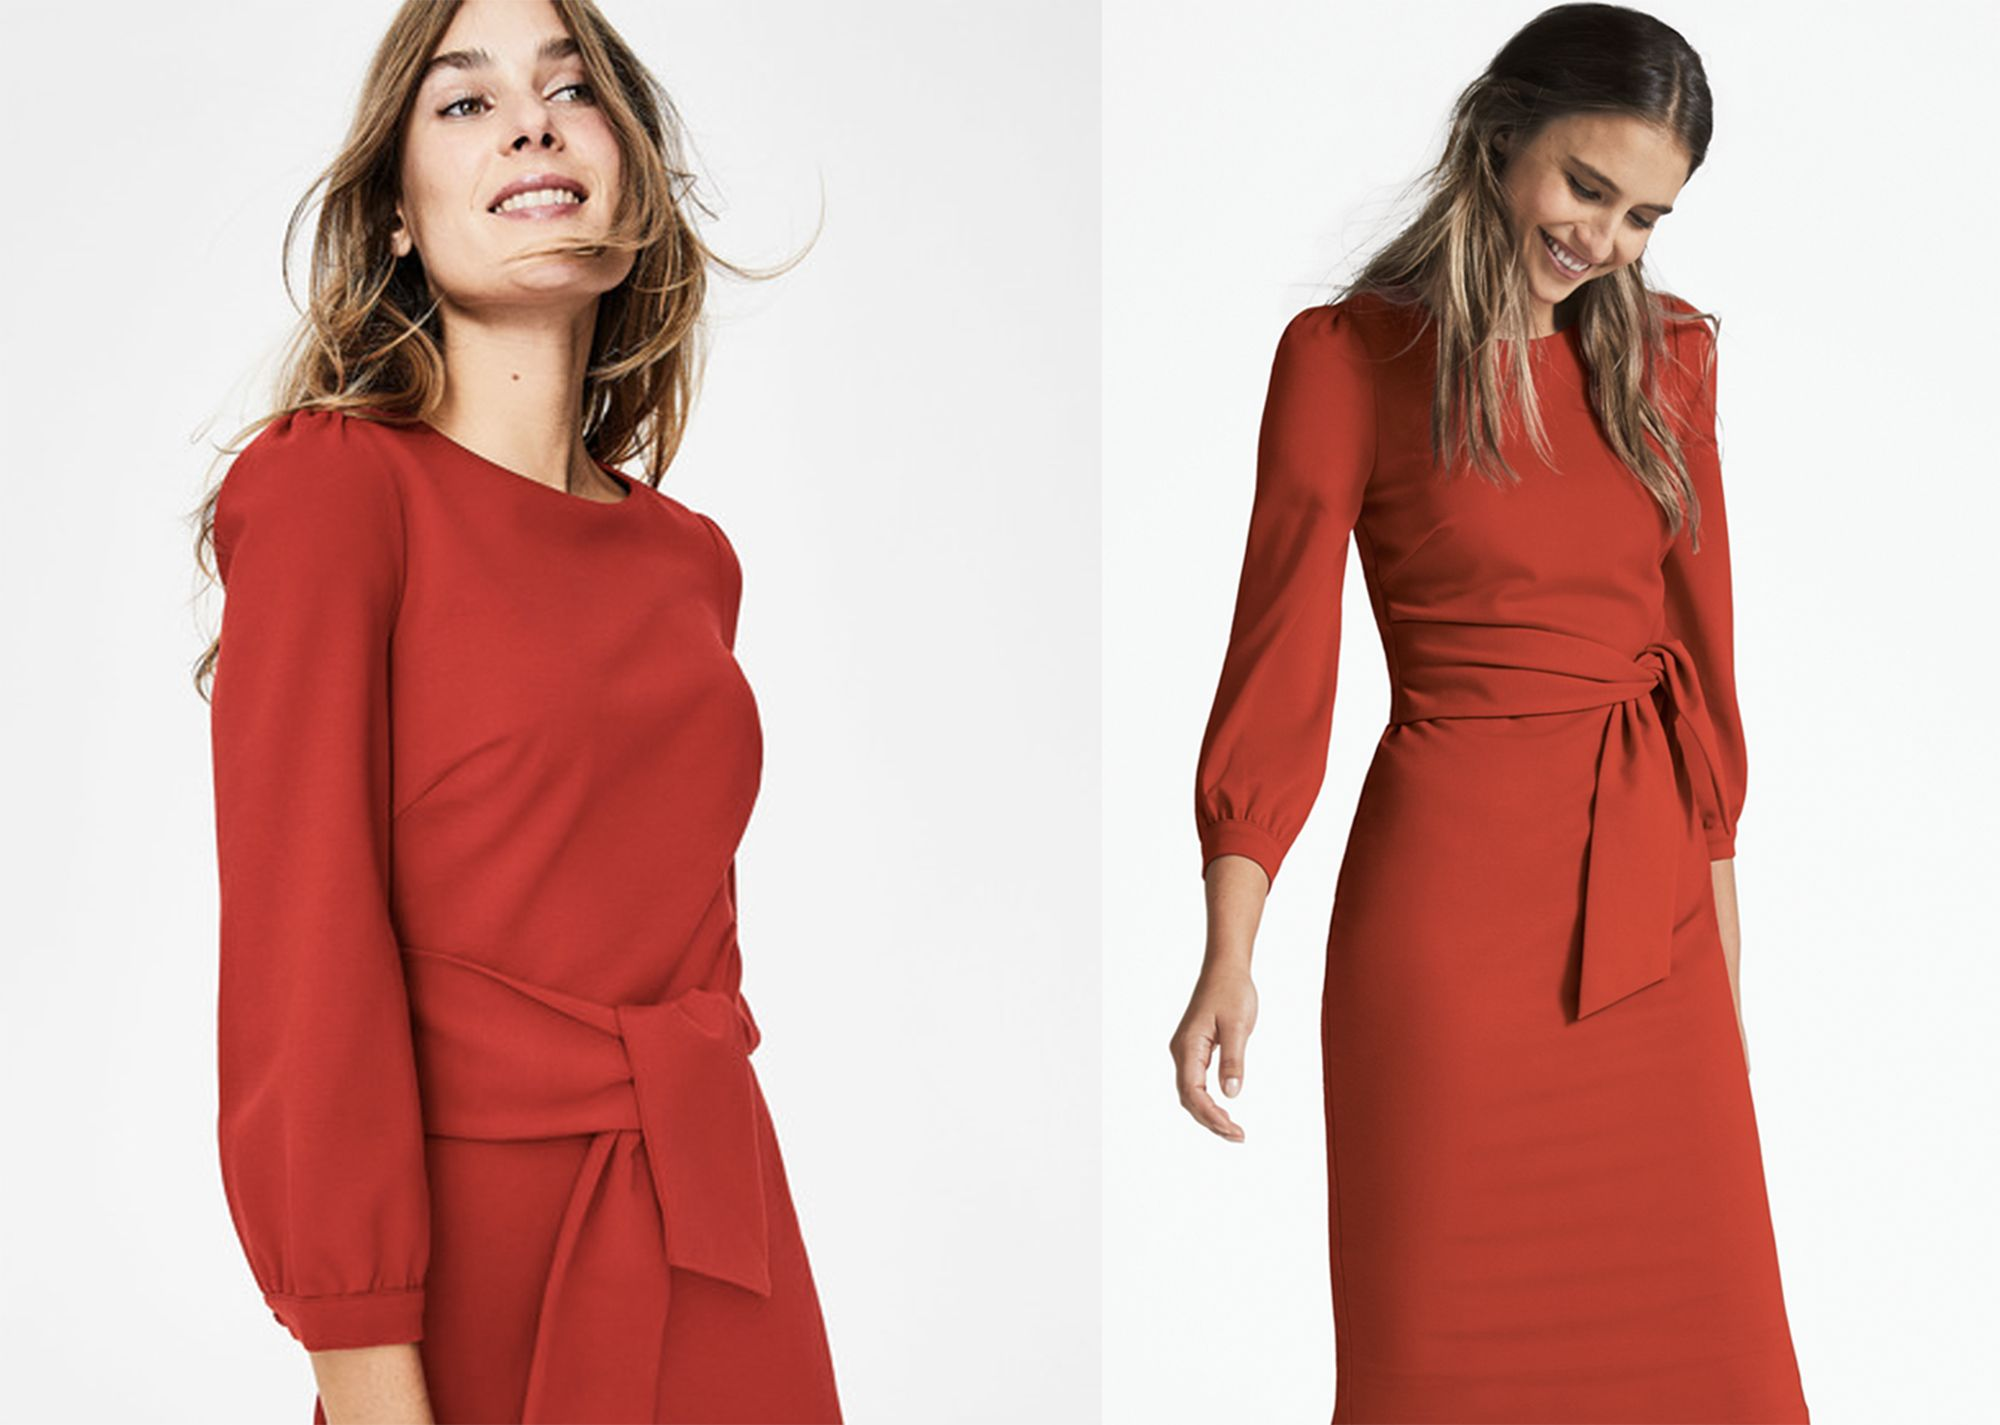 Boden Dress Boden S Sell Out Dress Is A New Season Must Have